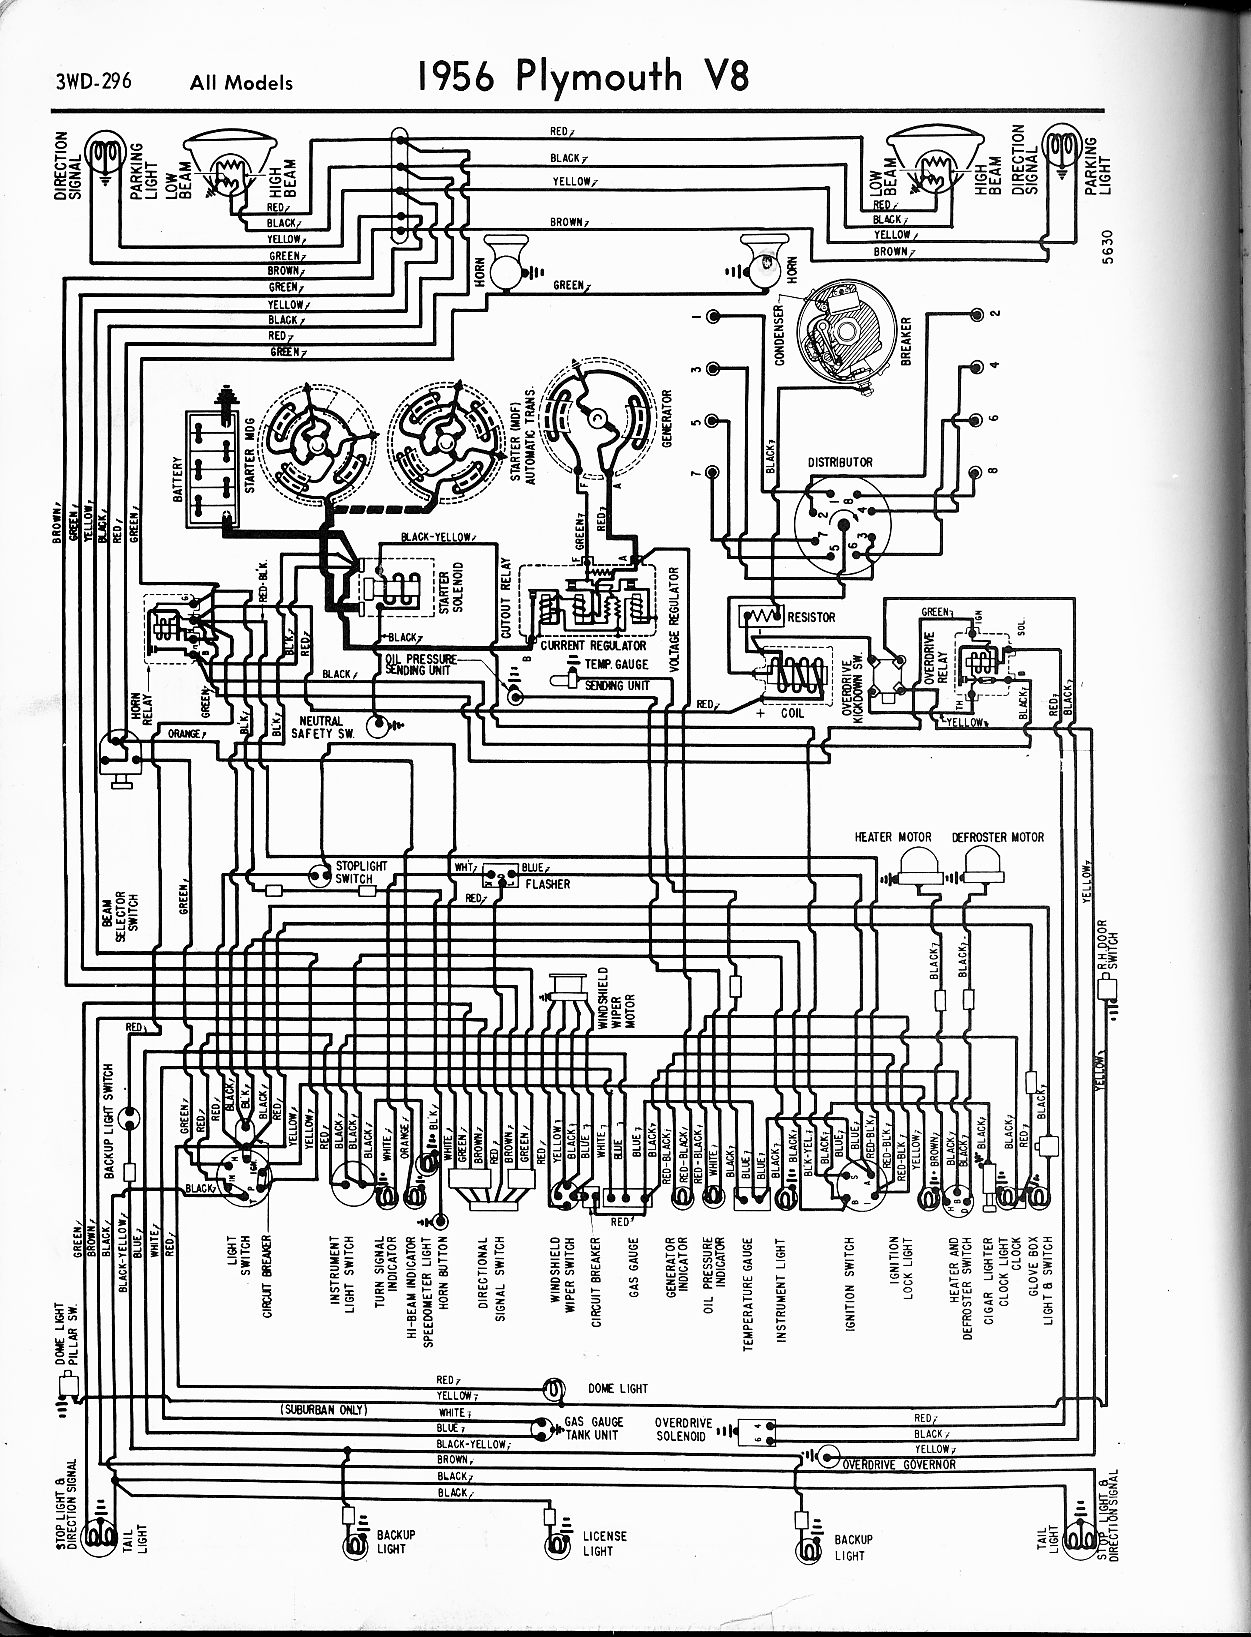 honda prelude radio wiring diagram for 2 way light switch australia civic 1996 spark plug | get free image about